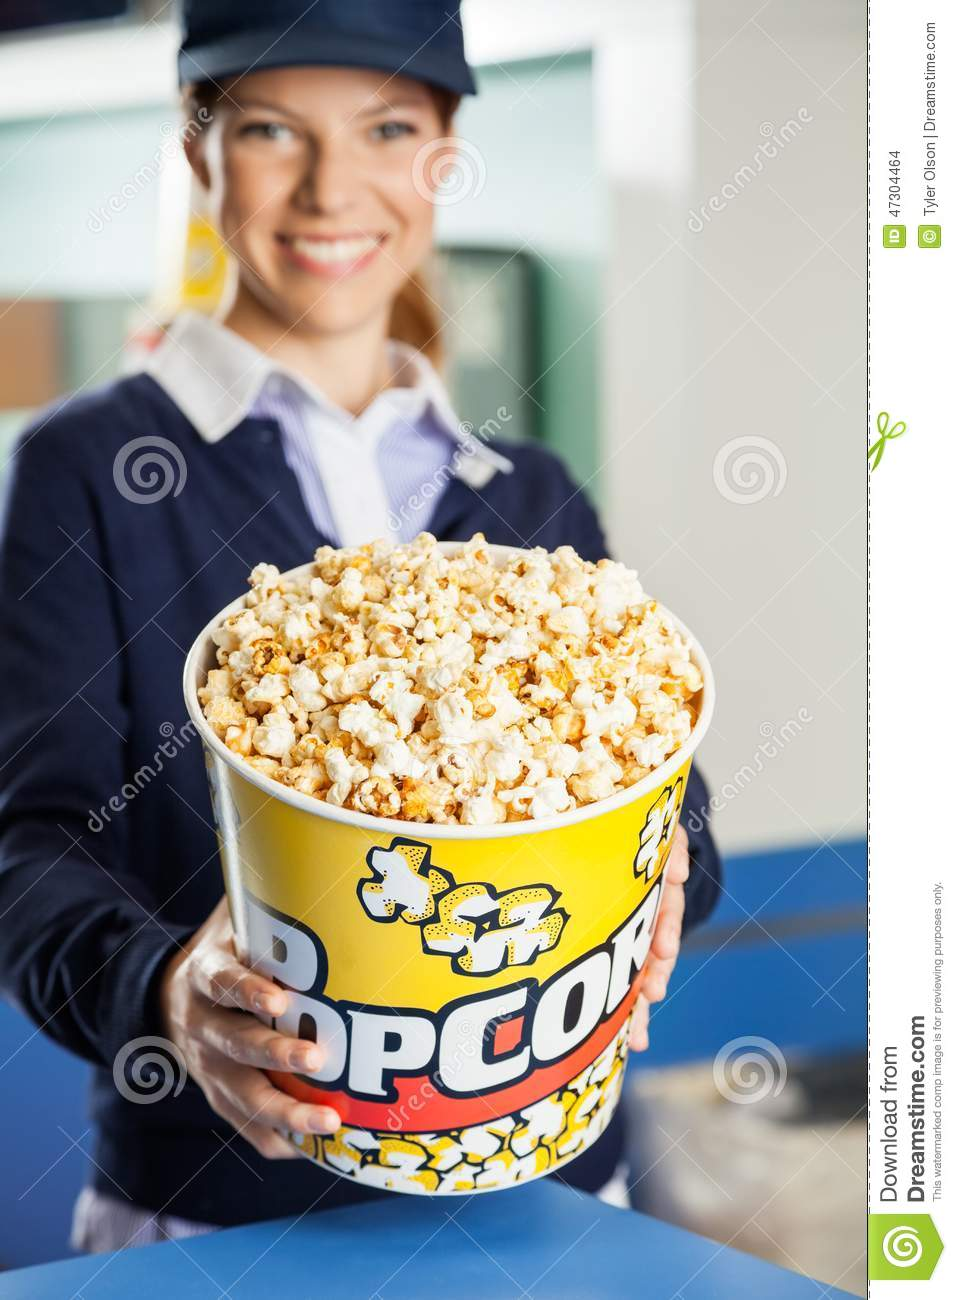 images movie theater concession stand clipart people at concession stand in source